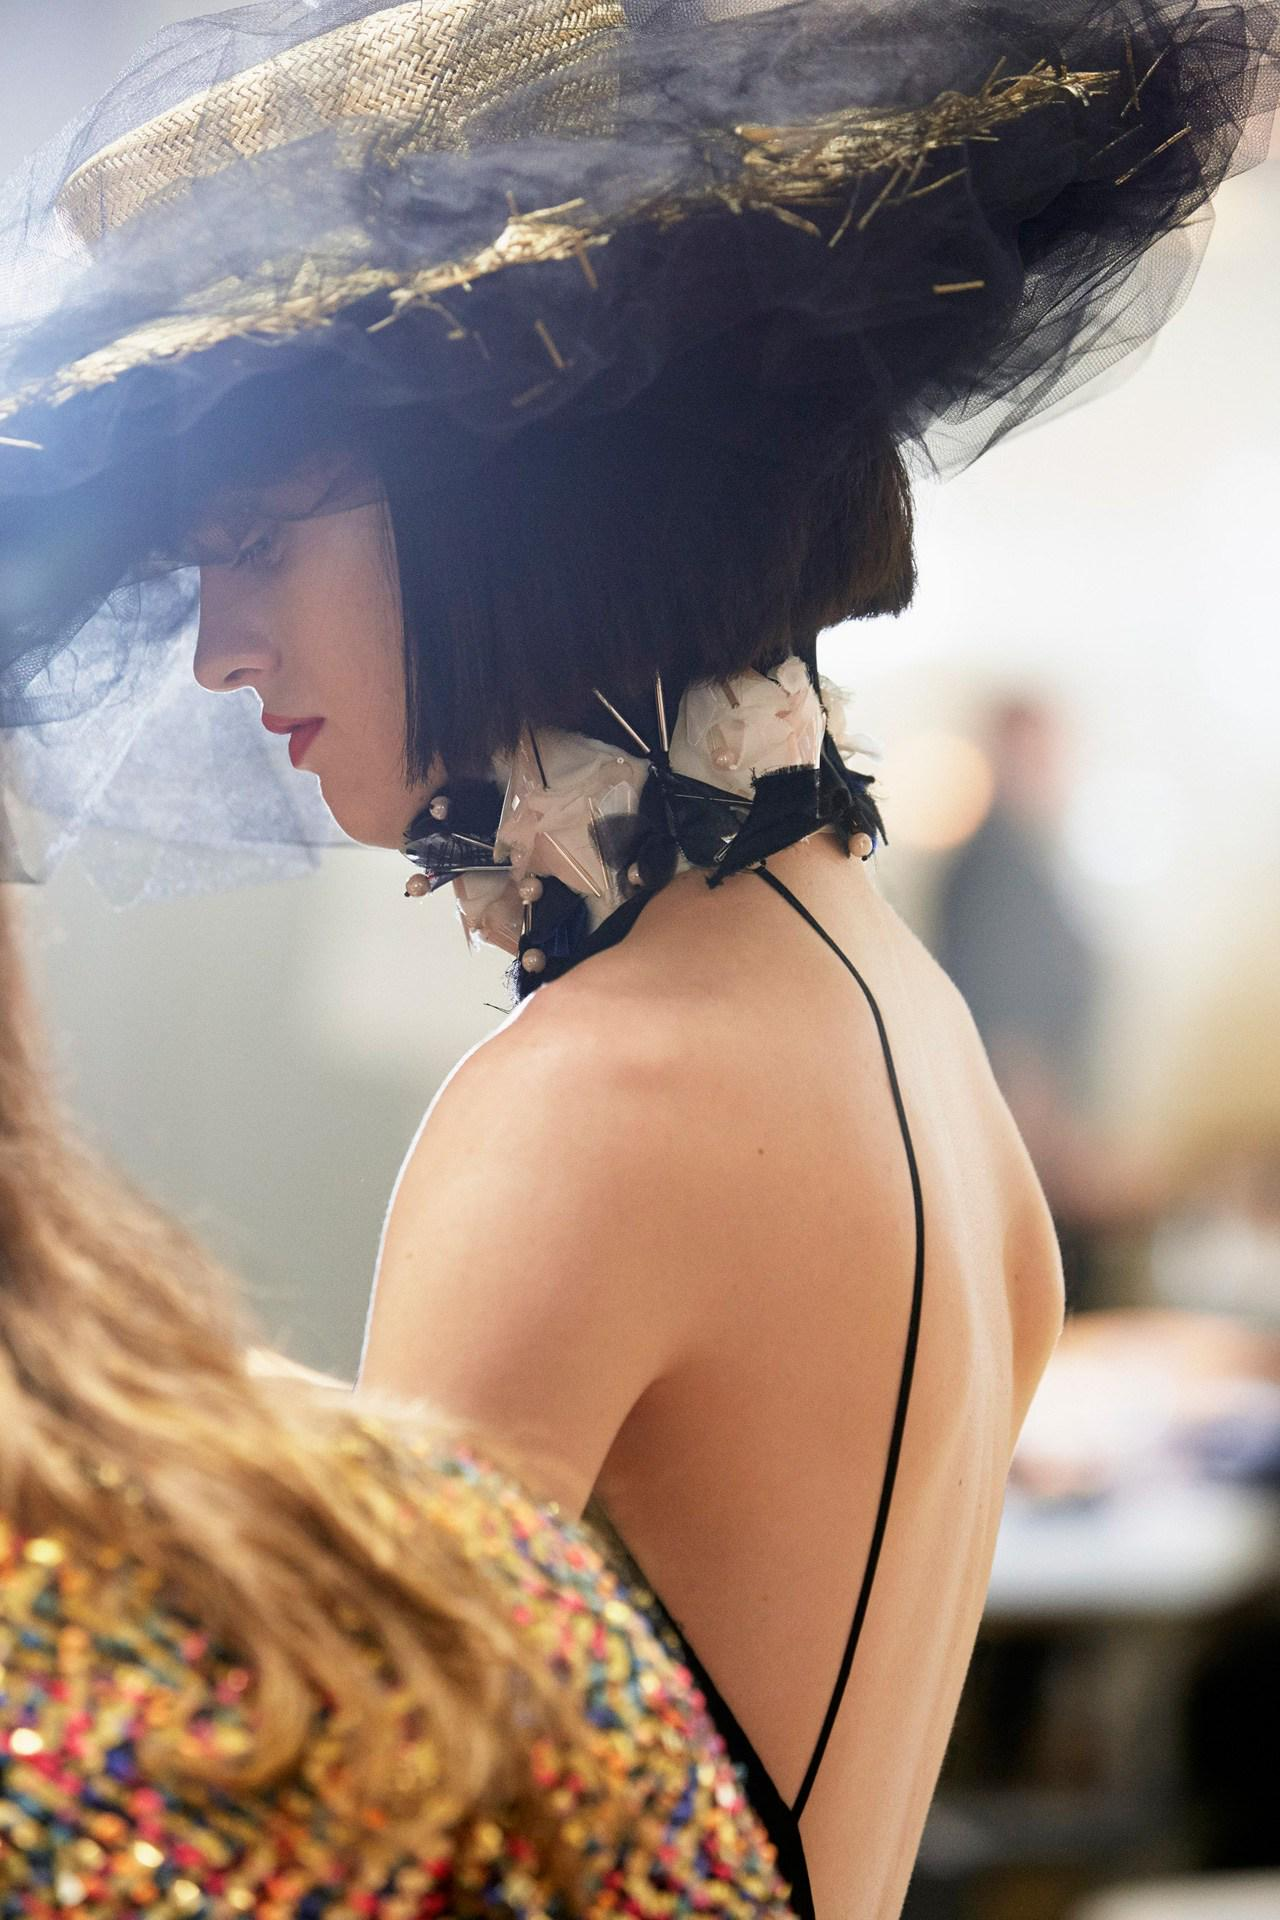 WATCH: how Chanel couture is made - http://t.co/DaMZxu08SY http://t.co/ivgmT6zcwB